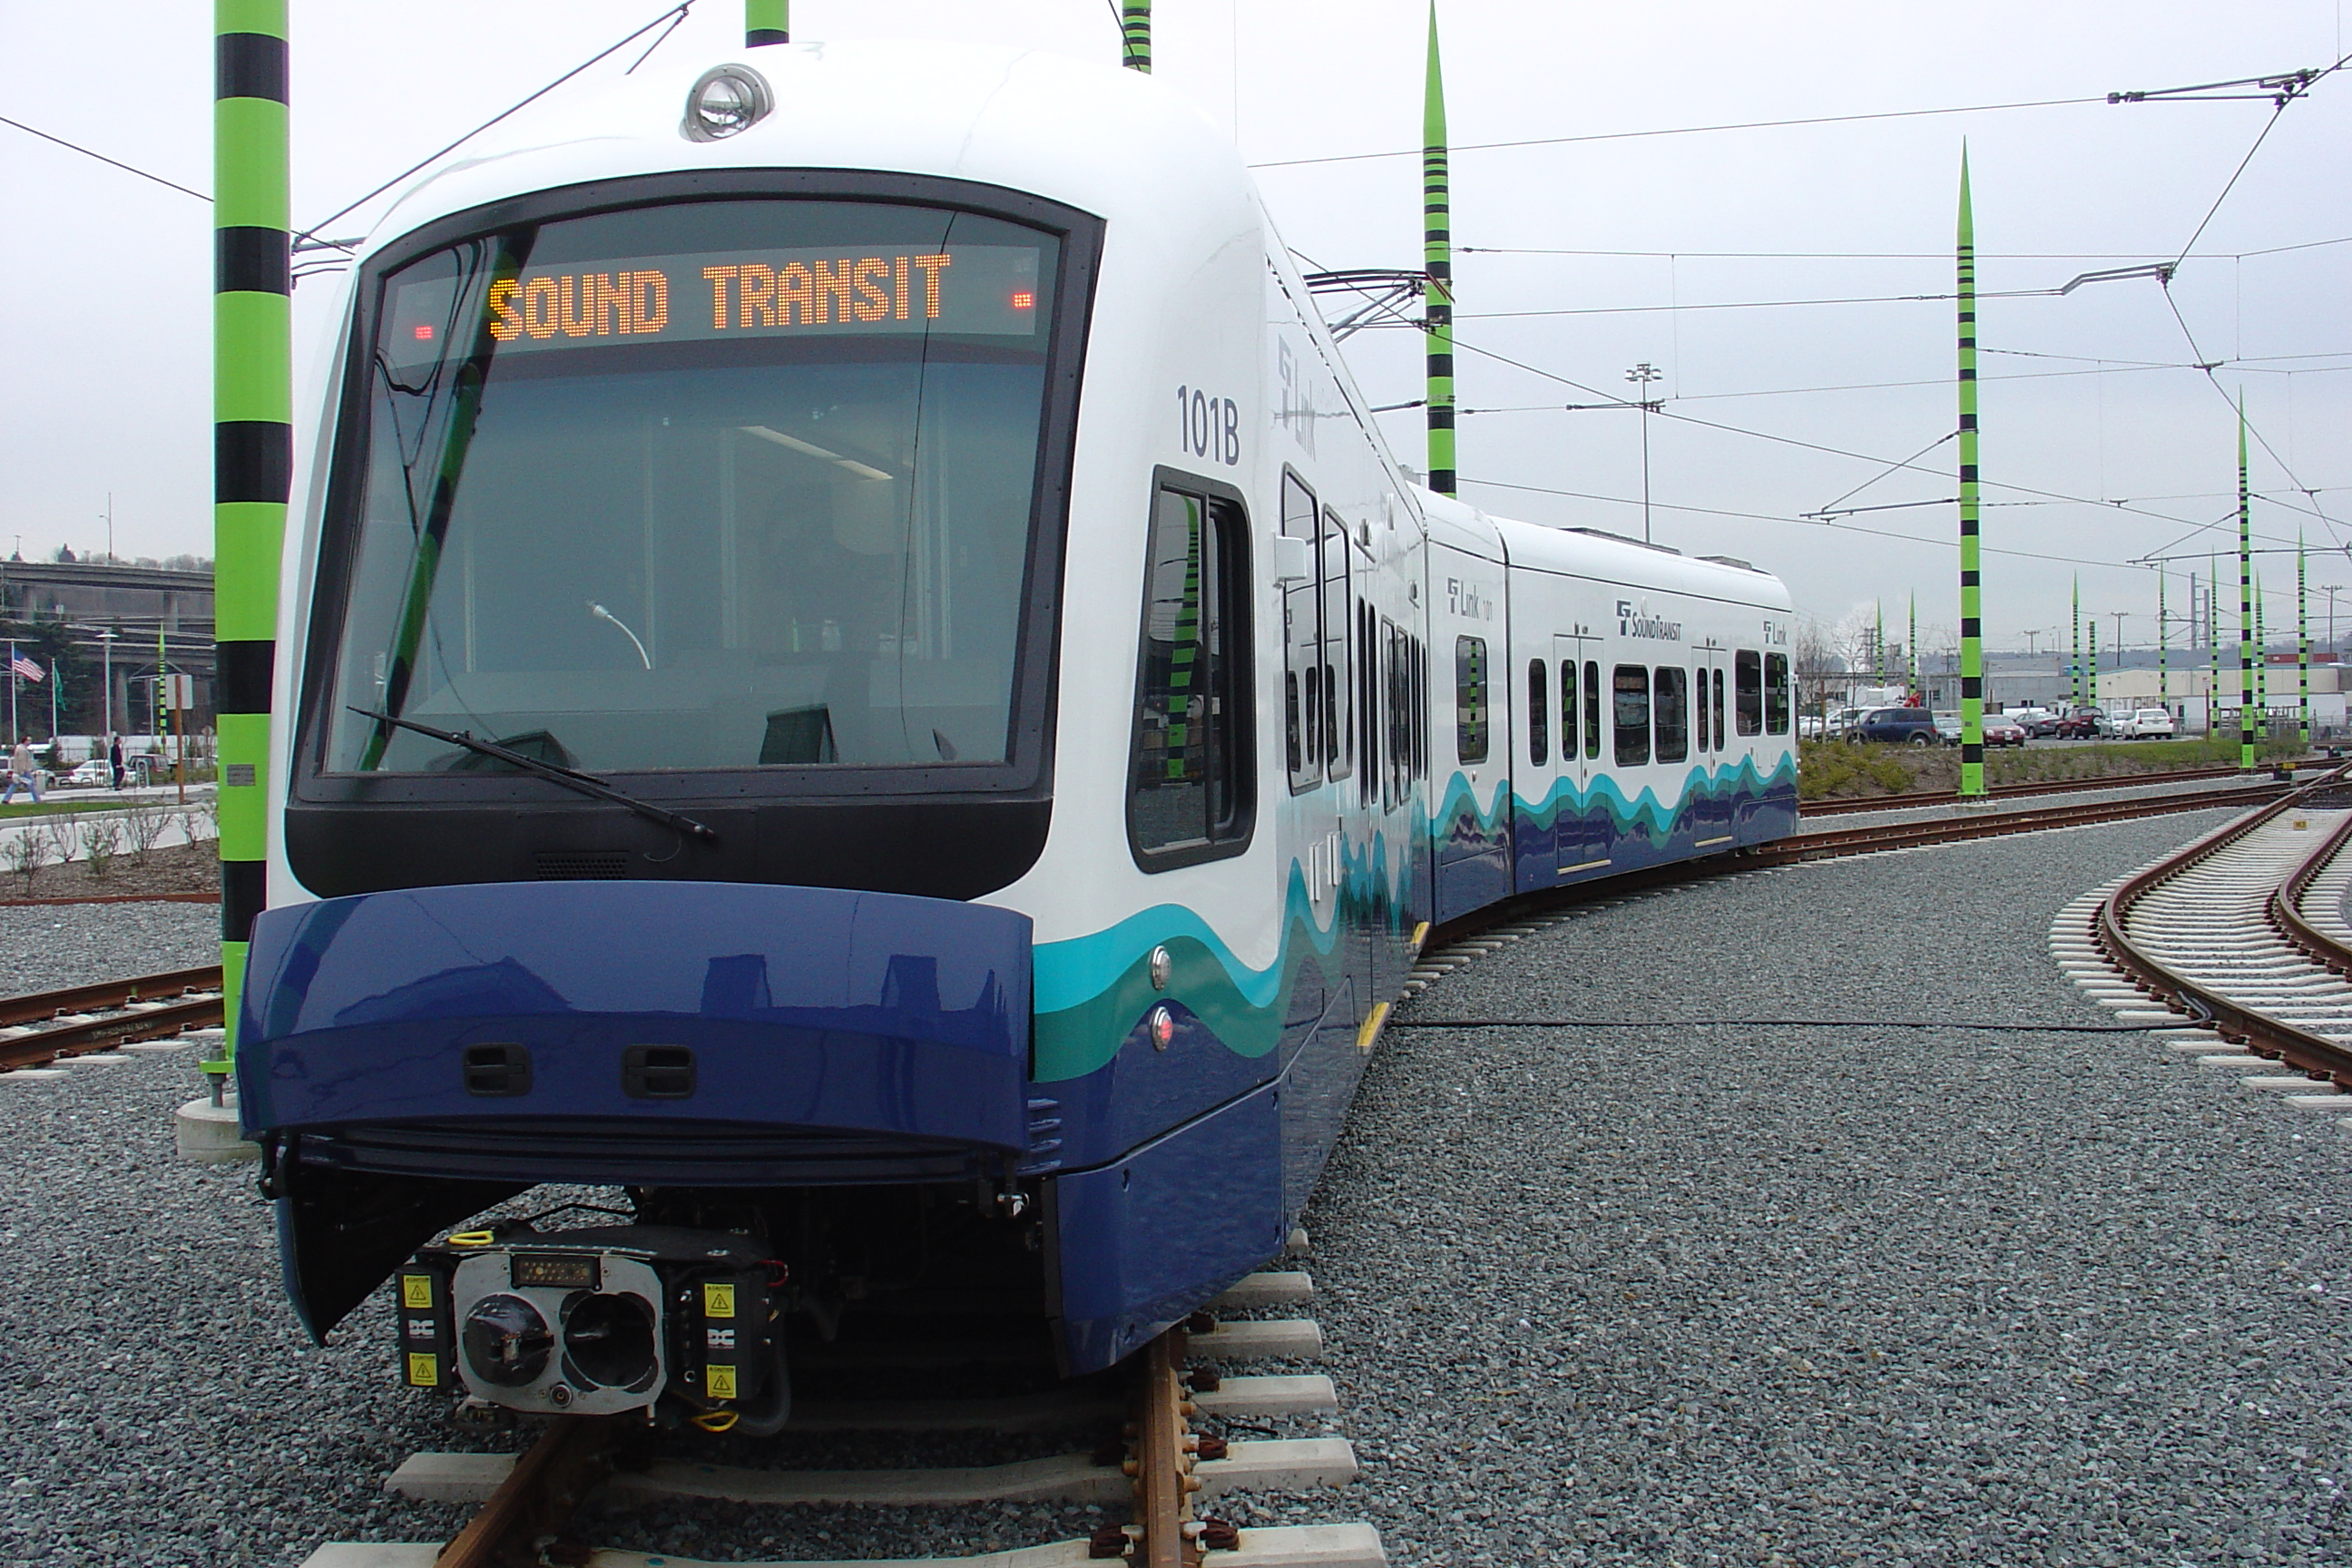 """A light rail train with blue, green, and teal details. The LED reader on the front says """"Sound Transit."""""""